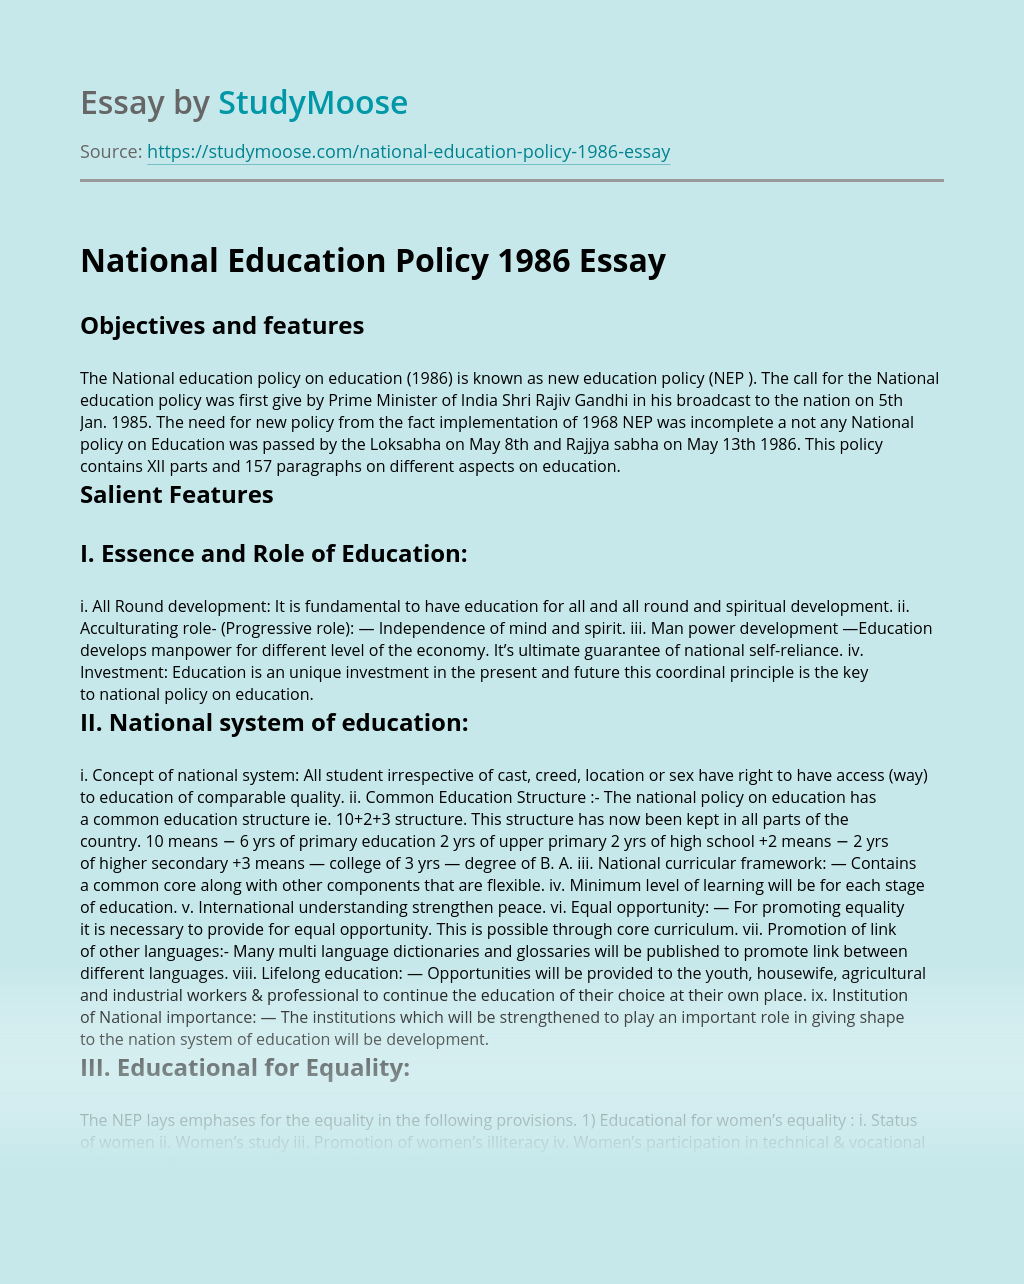 National Education Policy 1986